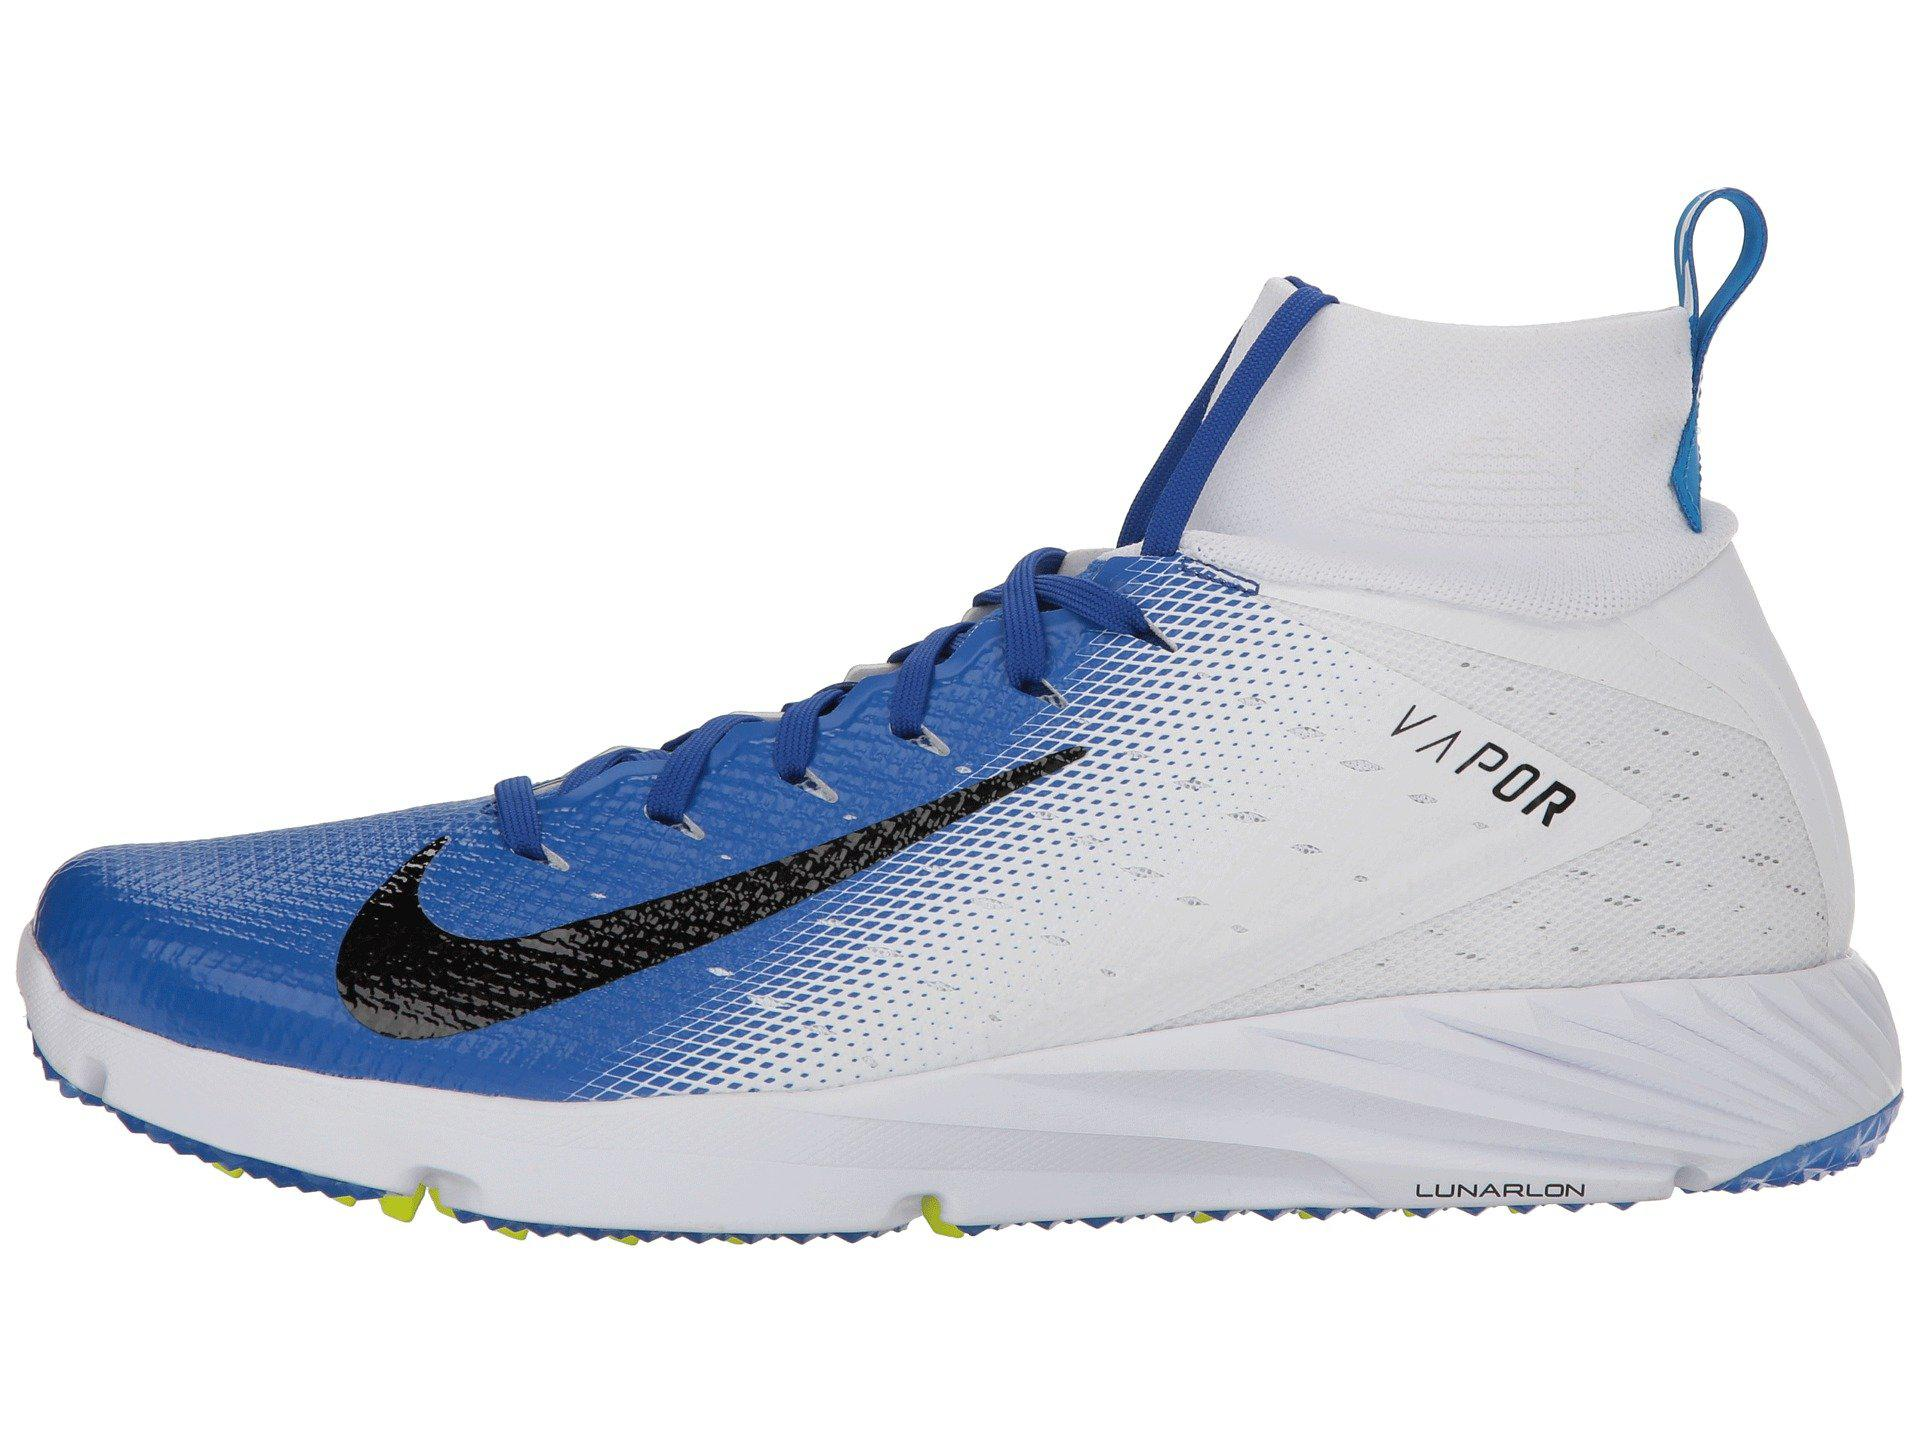 014bb8897 Nike Vapor Speed Turf 2 in Blue for Men - Save 9% - Lyst